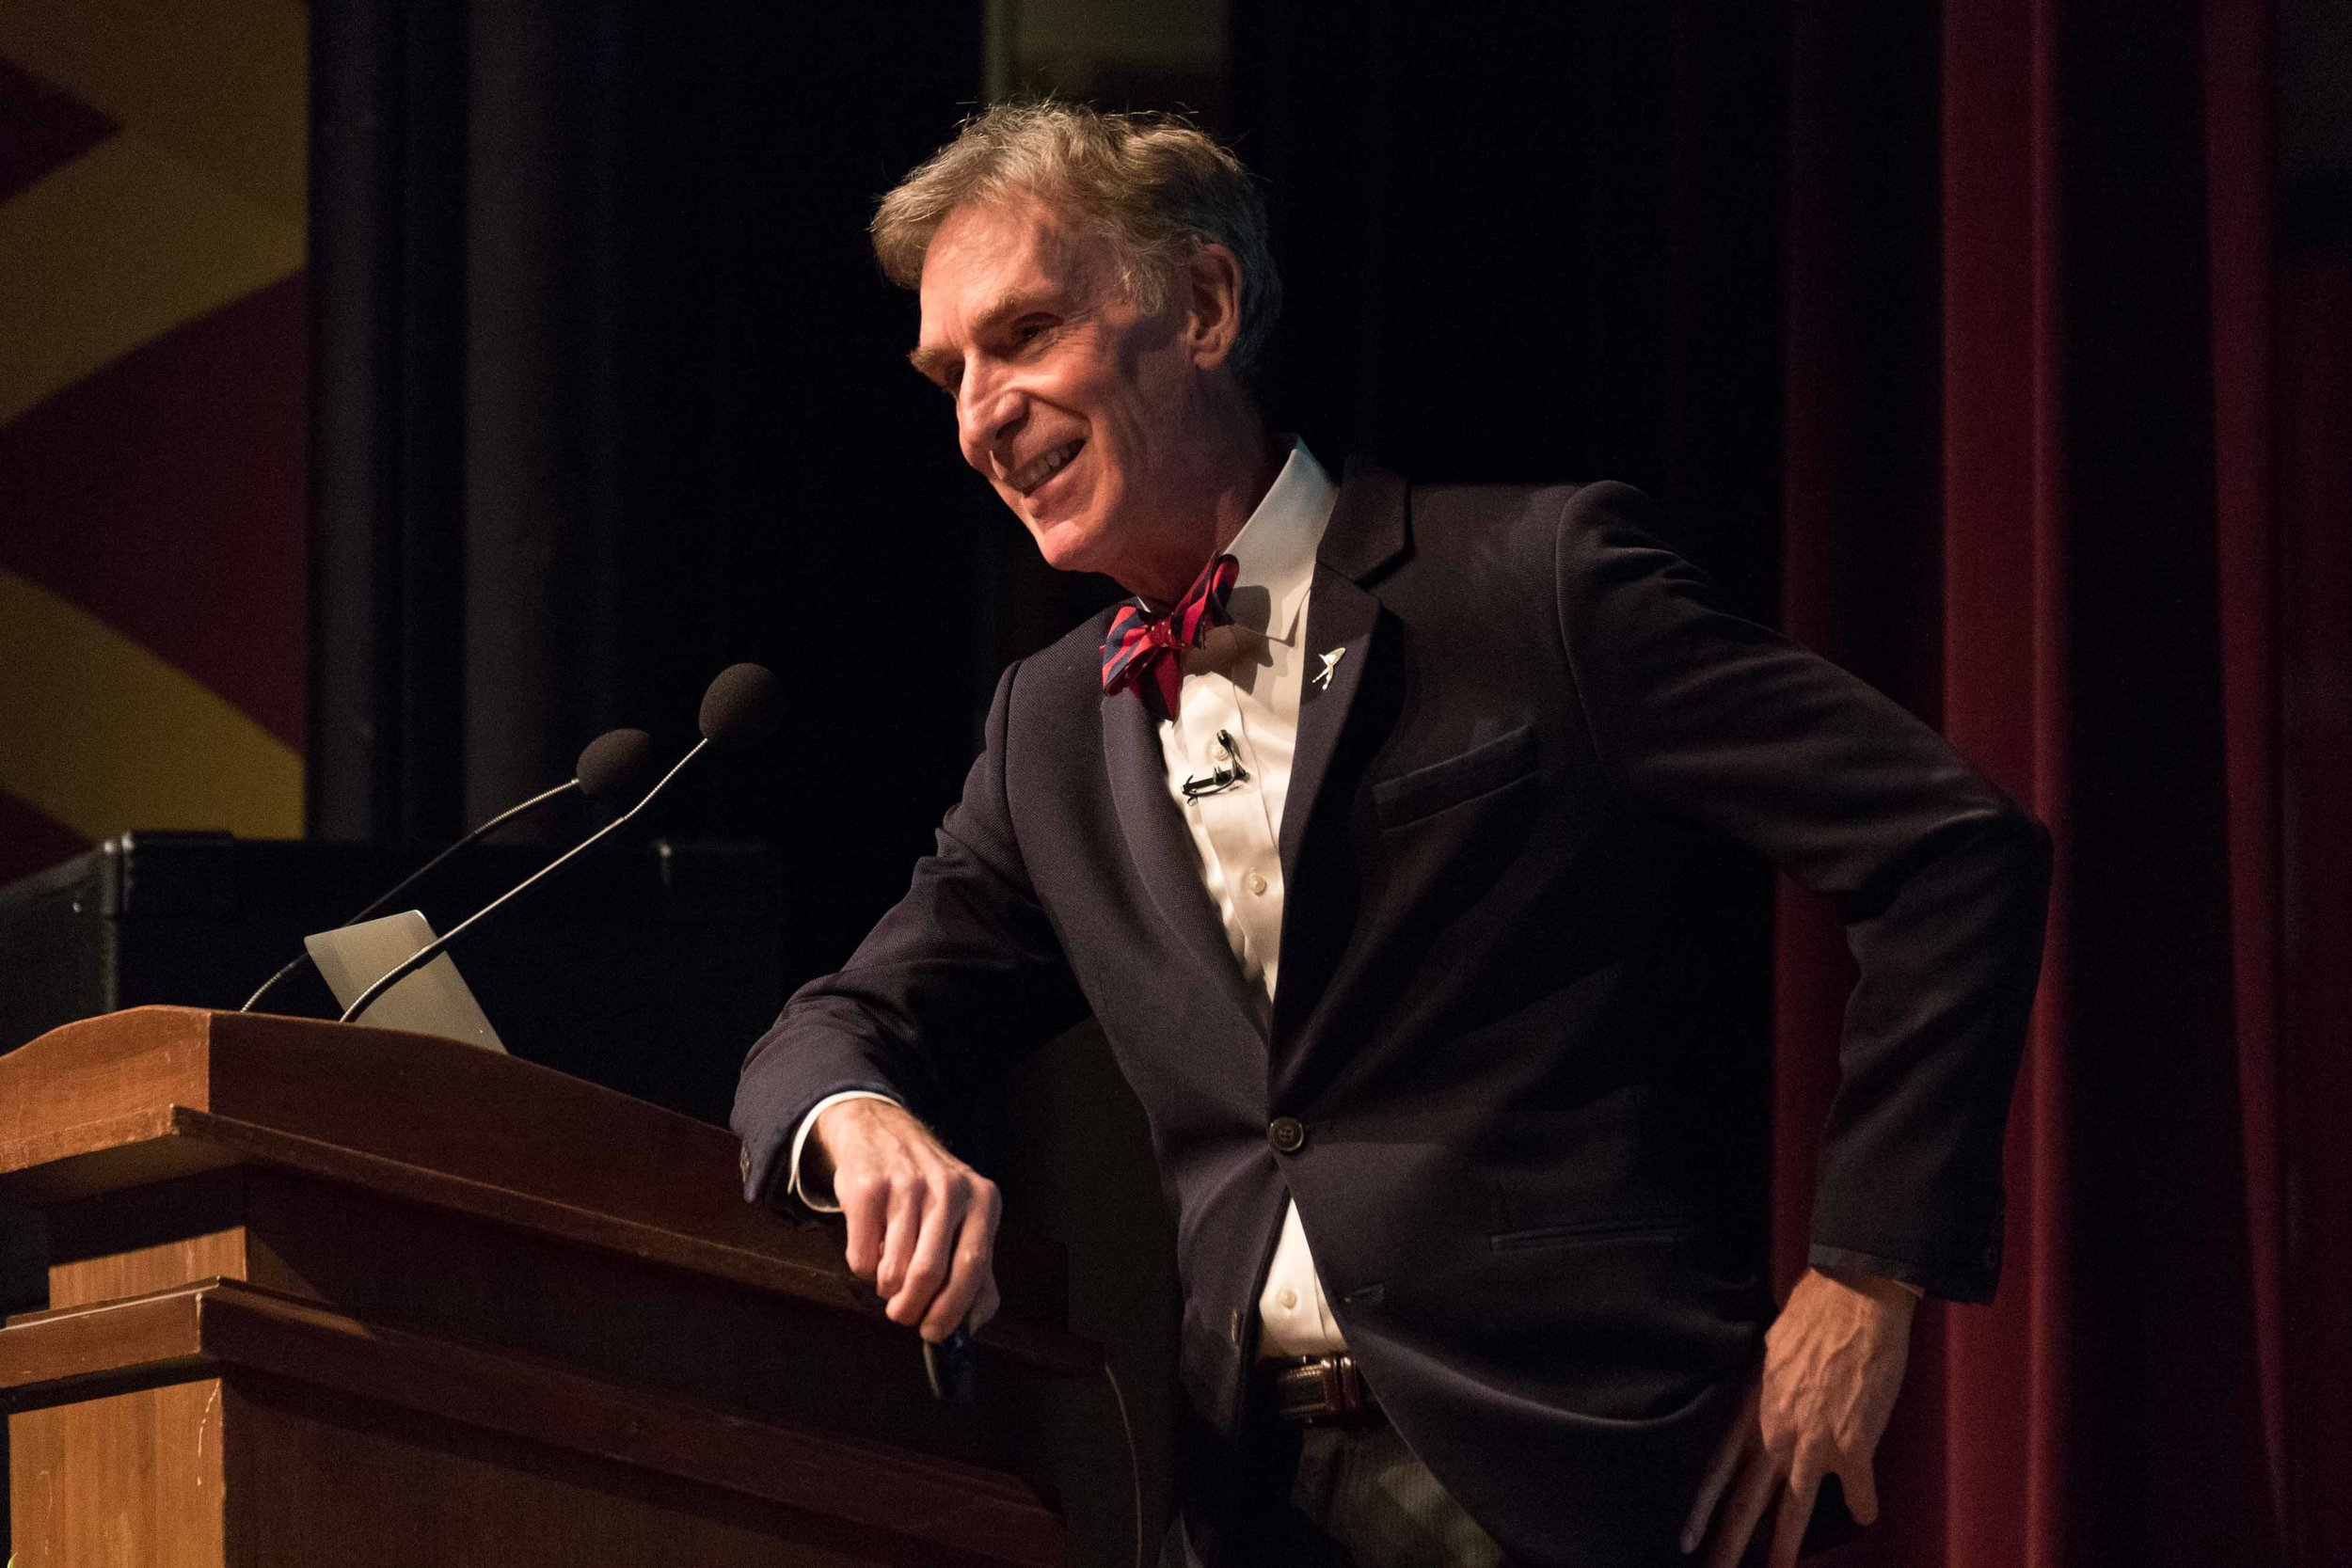 S1217 Bill Nye Lecture